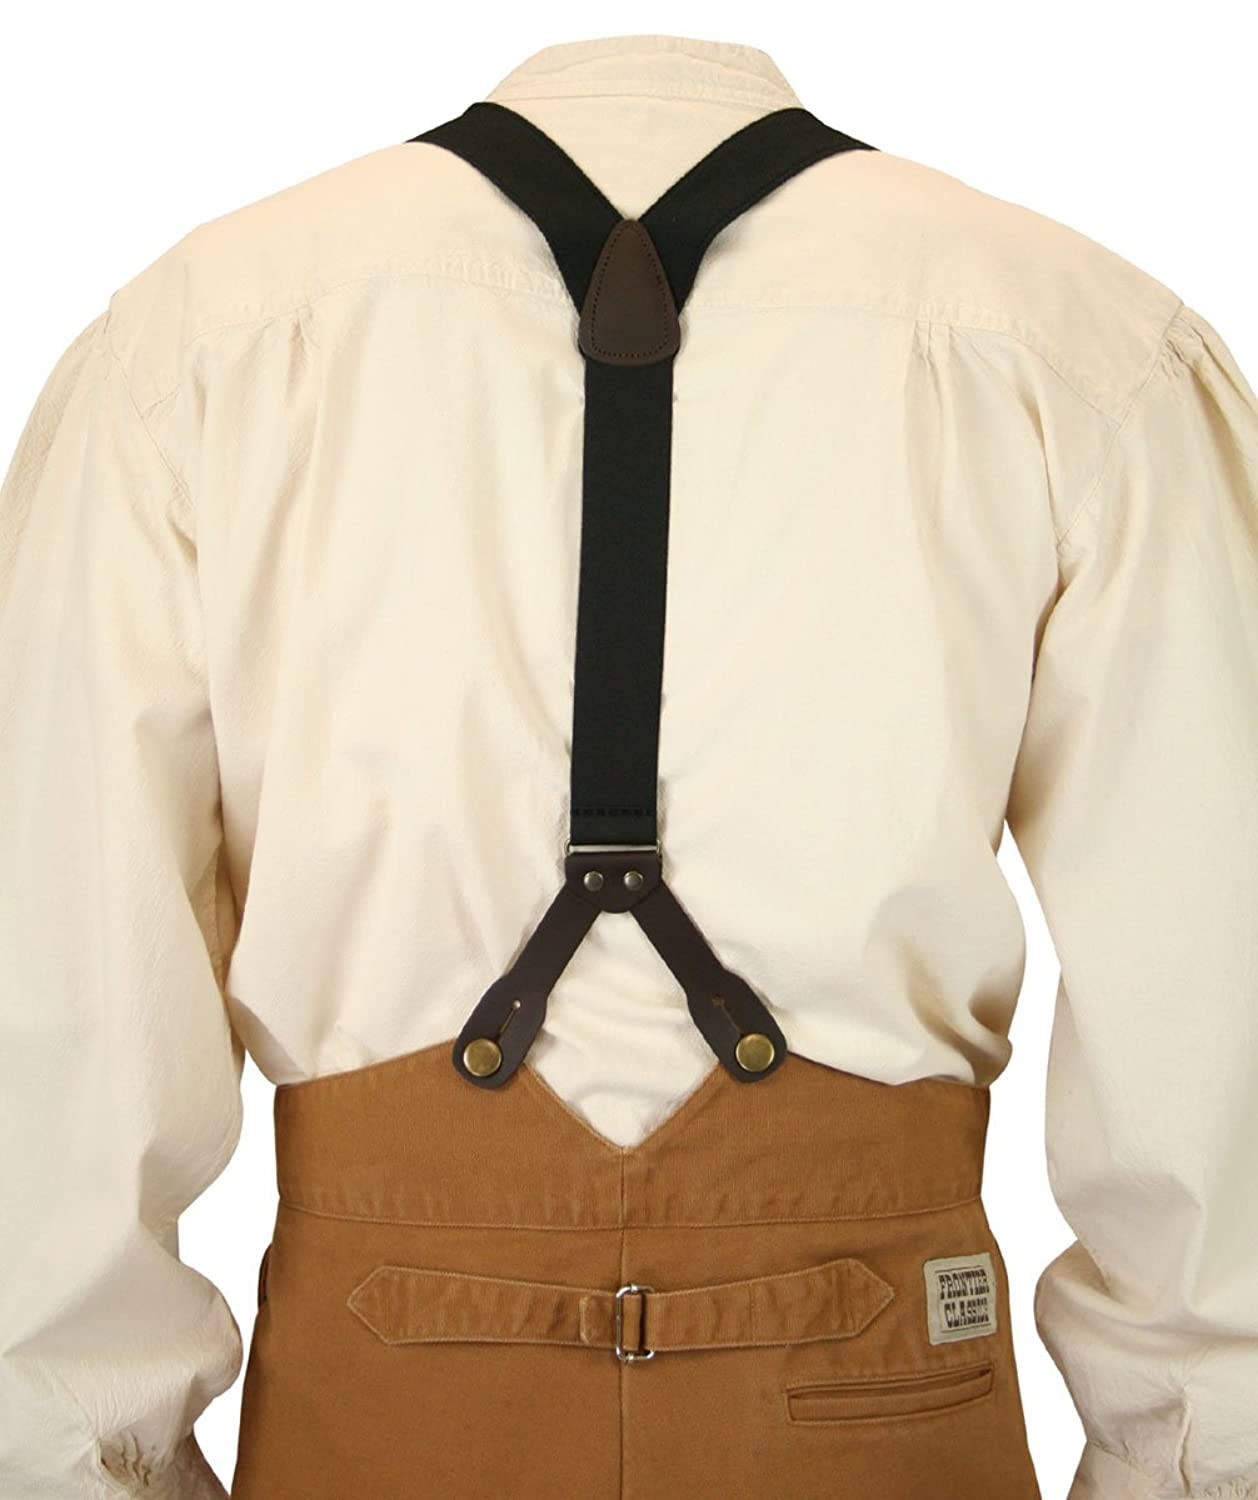 Victorian Men's Pants – Victorian Steampunk Men's Clothing Historical Emporium Mens Canvas Stagecoach Y-Back Suspenders $27.95 AT vintagedancer.com